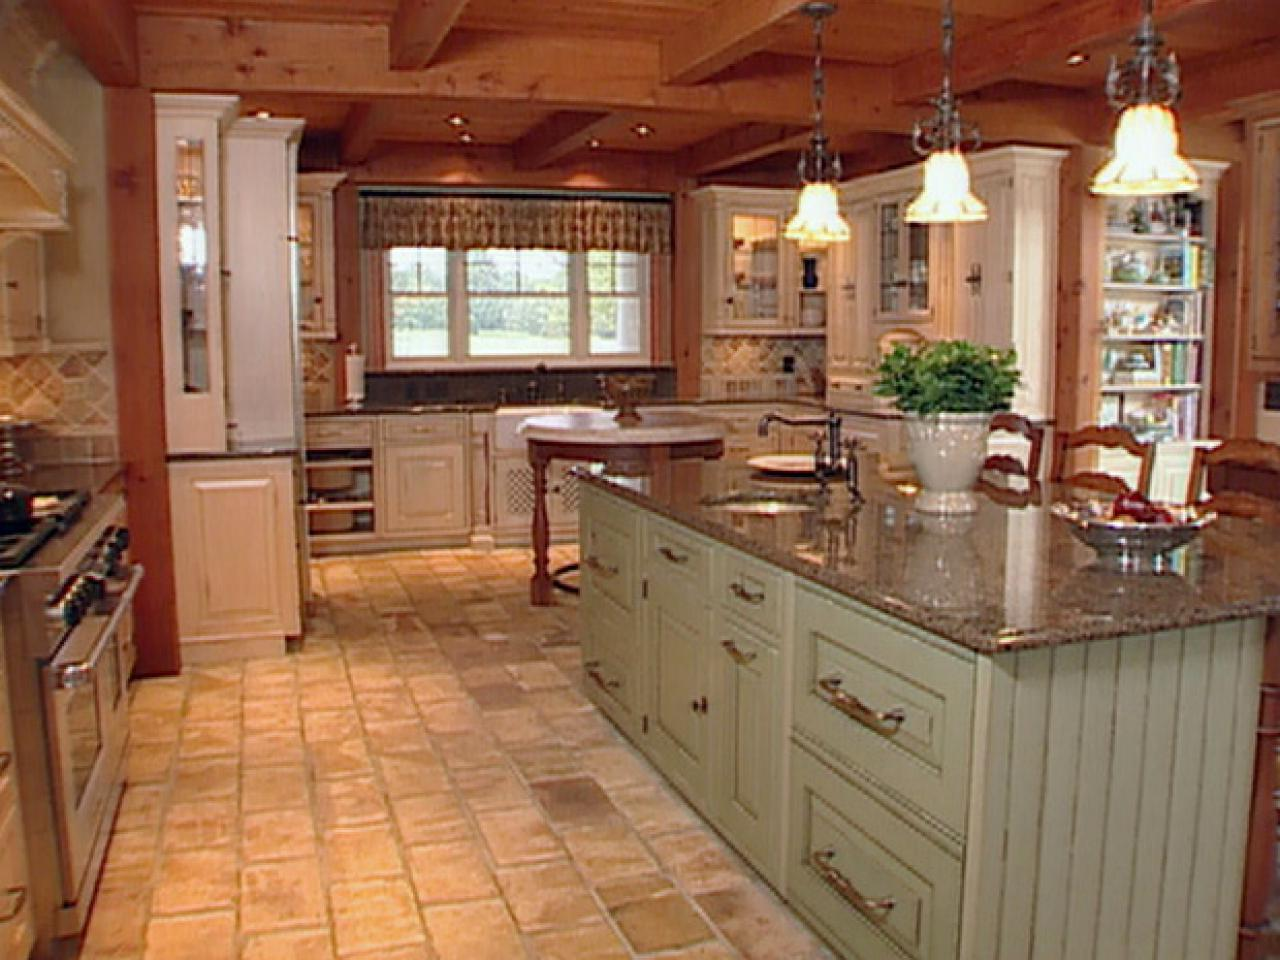 Older Home Kitchen Remodeling Ideas | Roy Home Design on Kitchen Remodel Ideas  id=37487